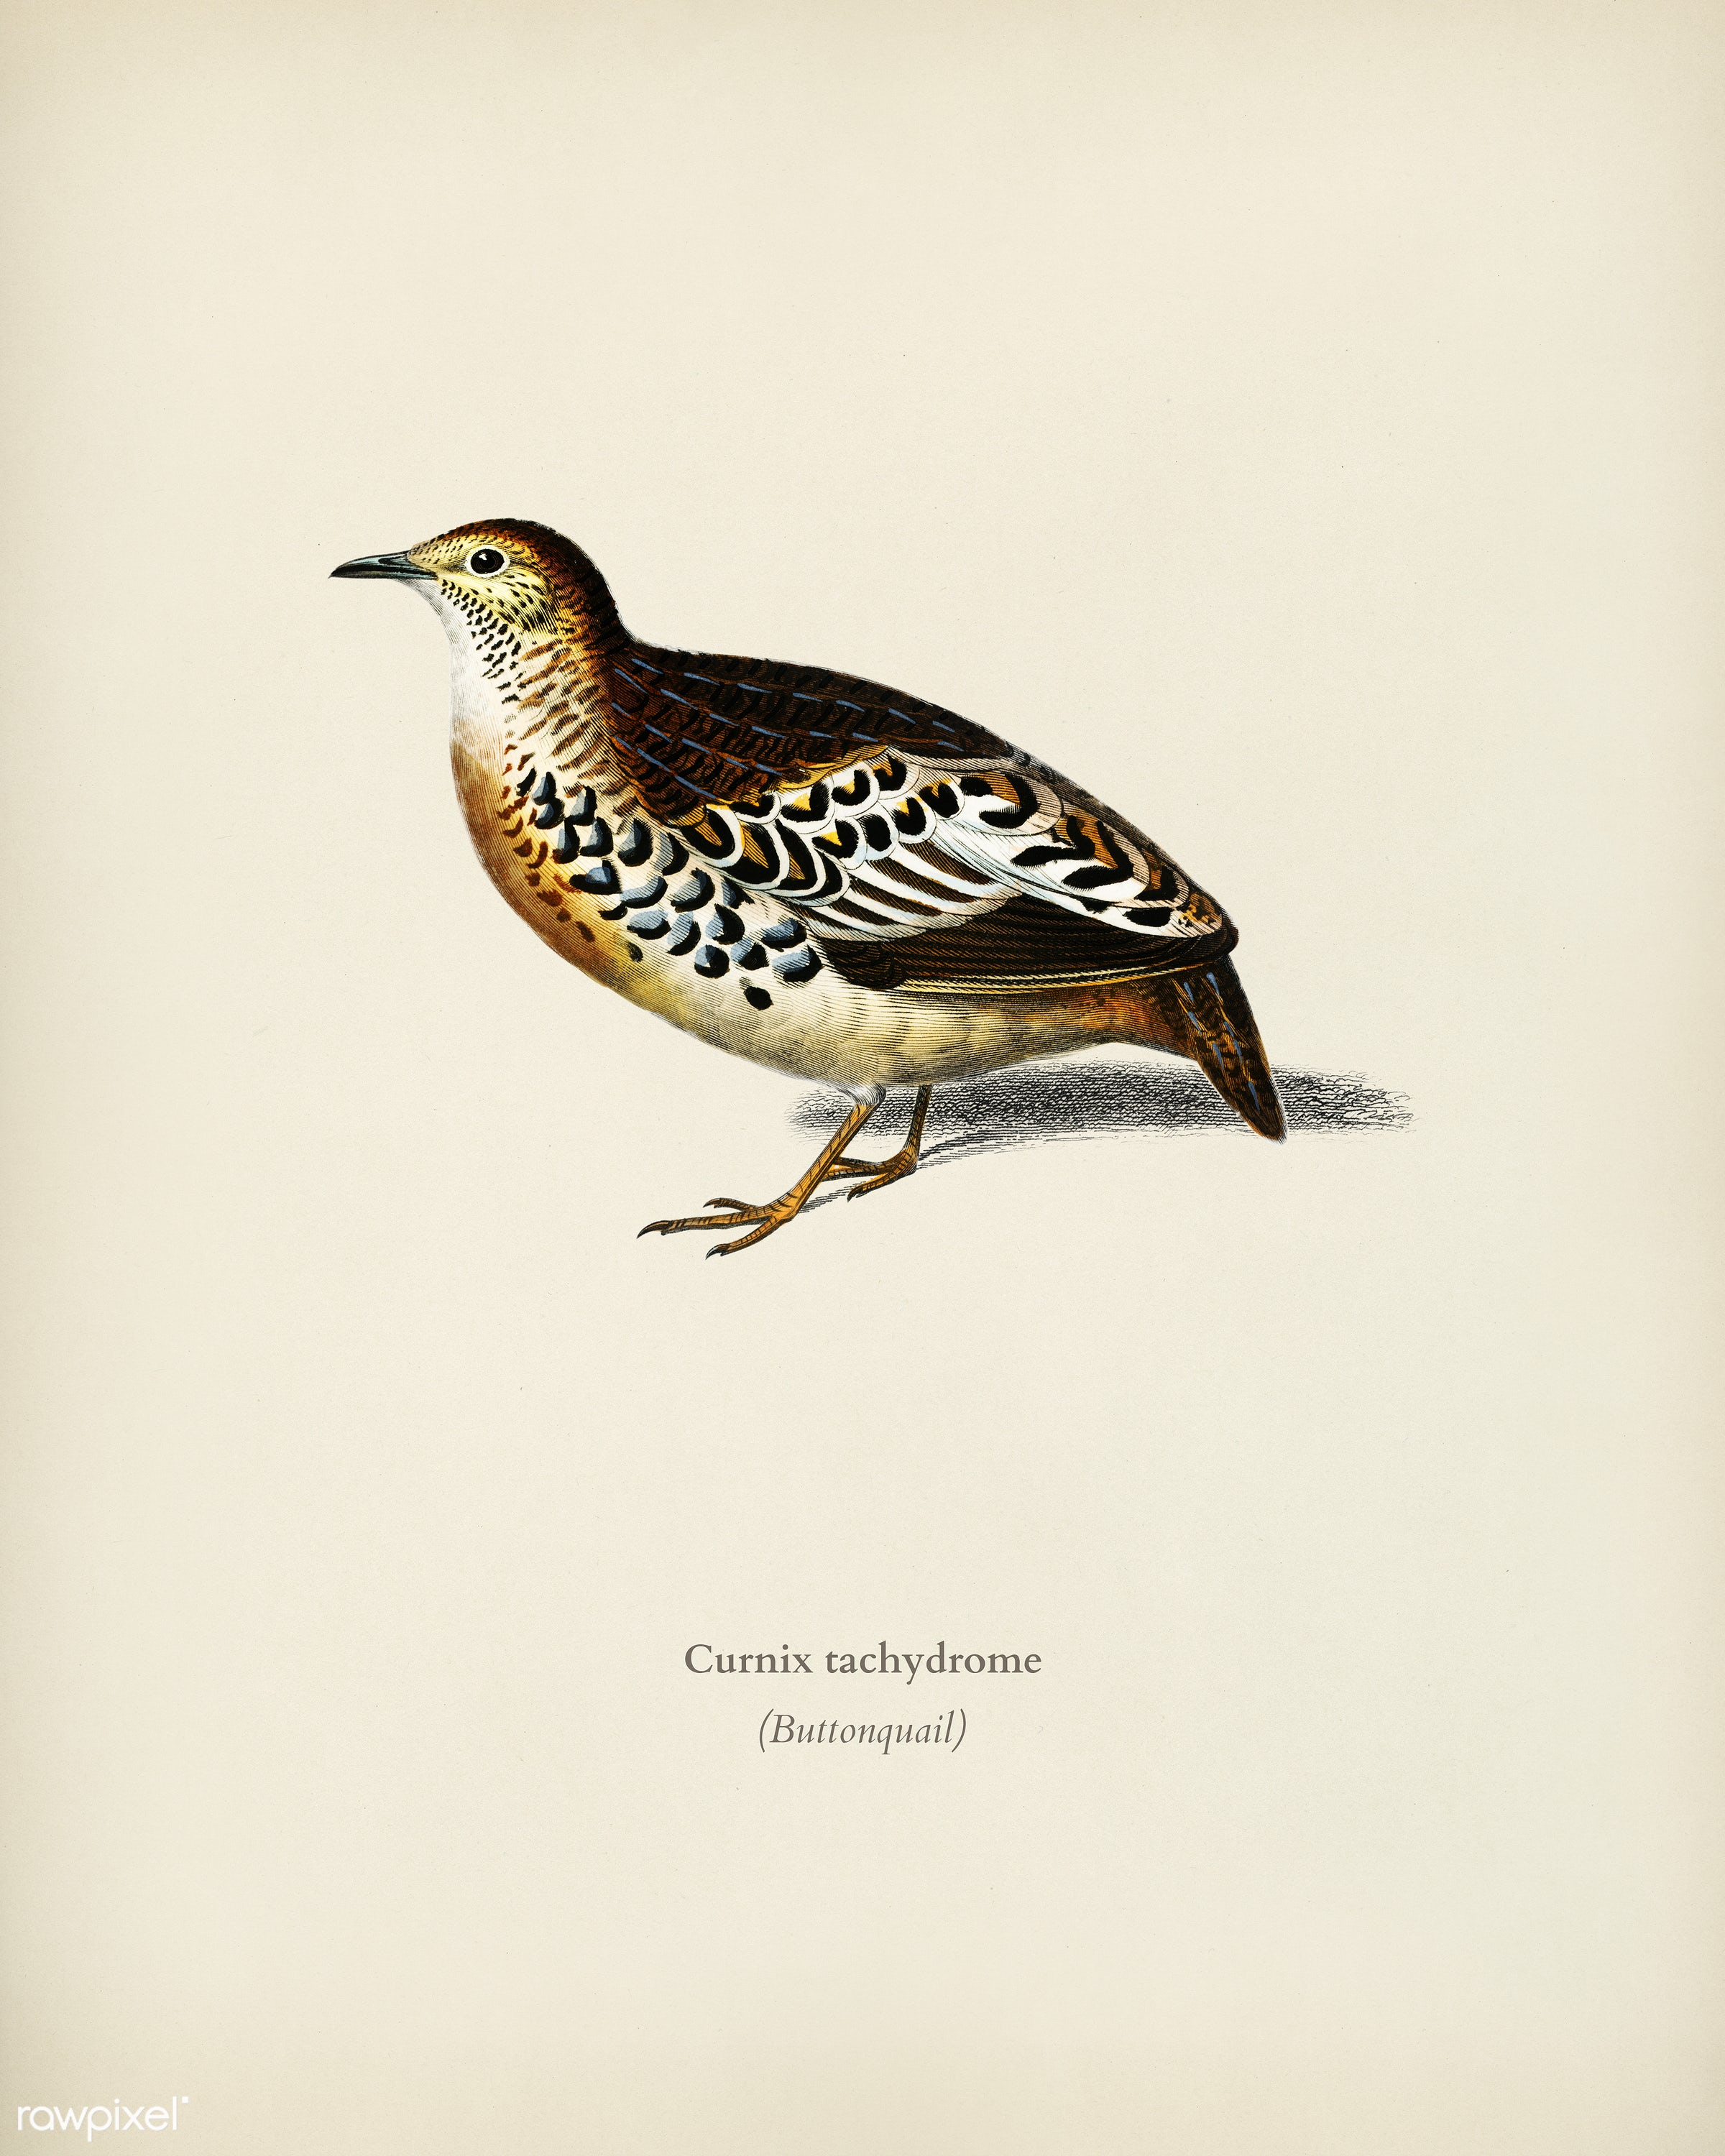 Buttonquail (Curnix tachydrome) illustrated by Charles Dessalines D' Orbigny (1806-1876). Digitally enhanced from our...